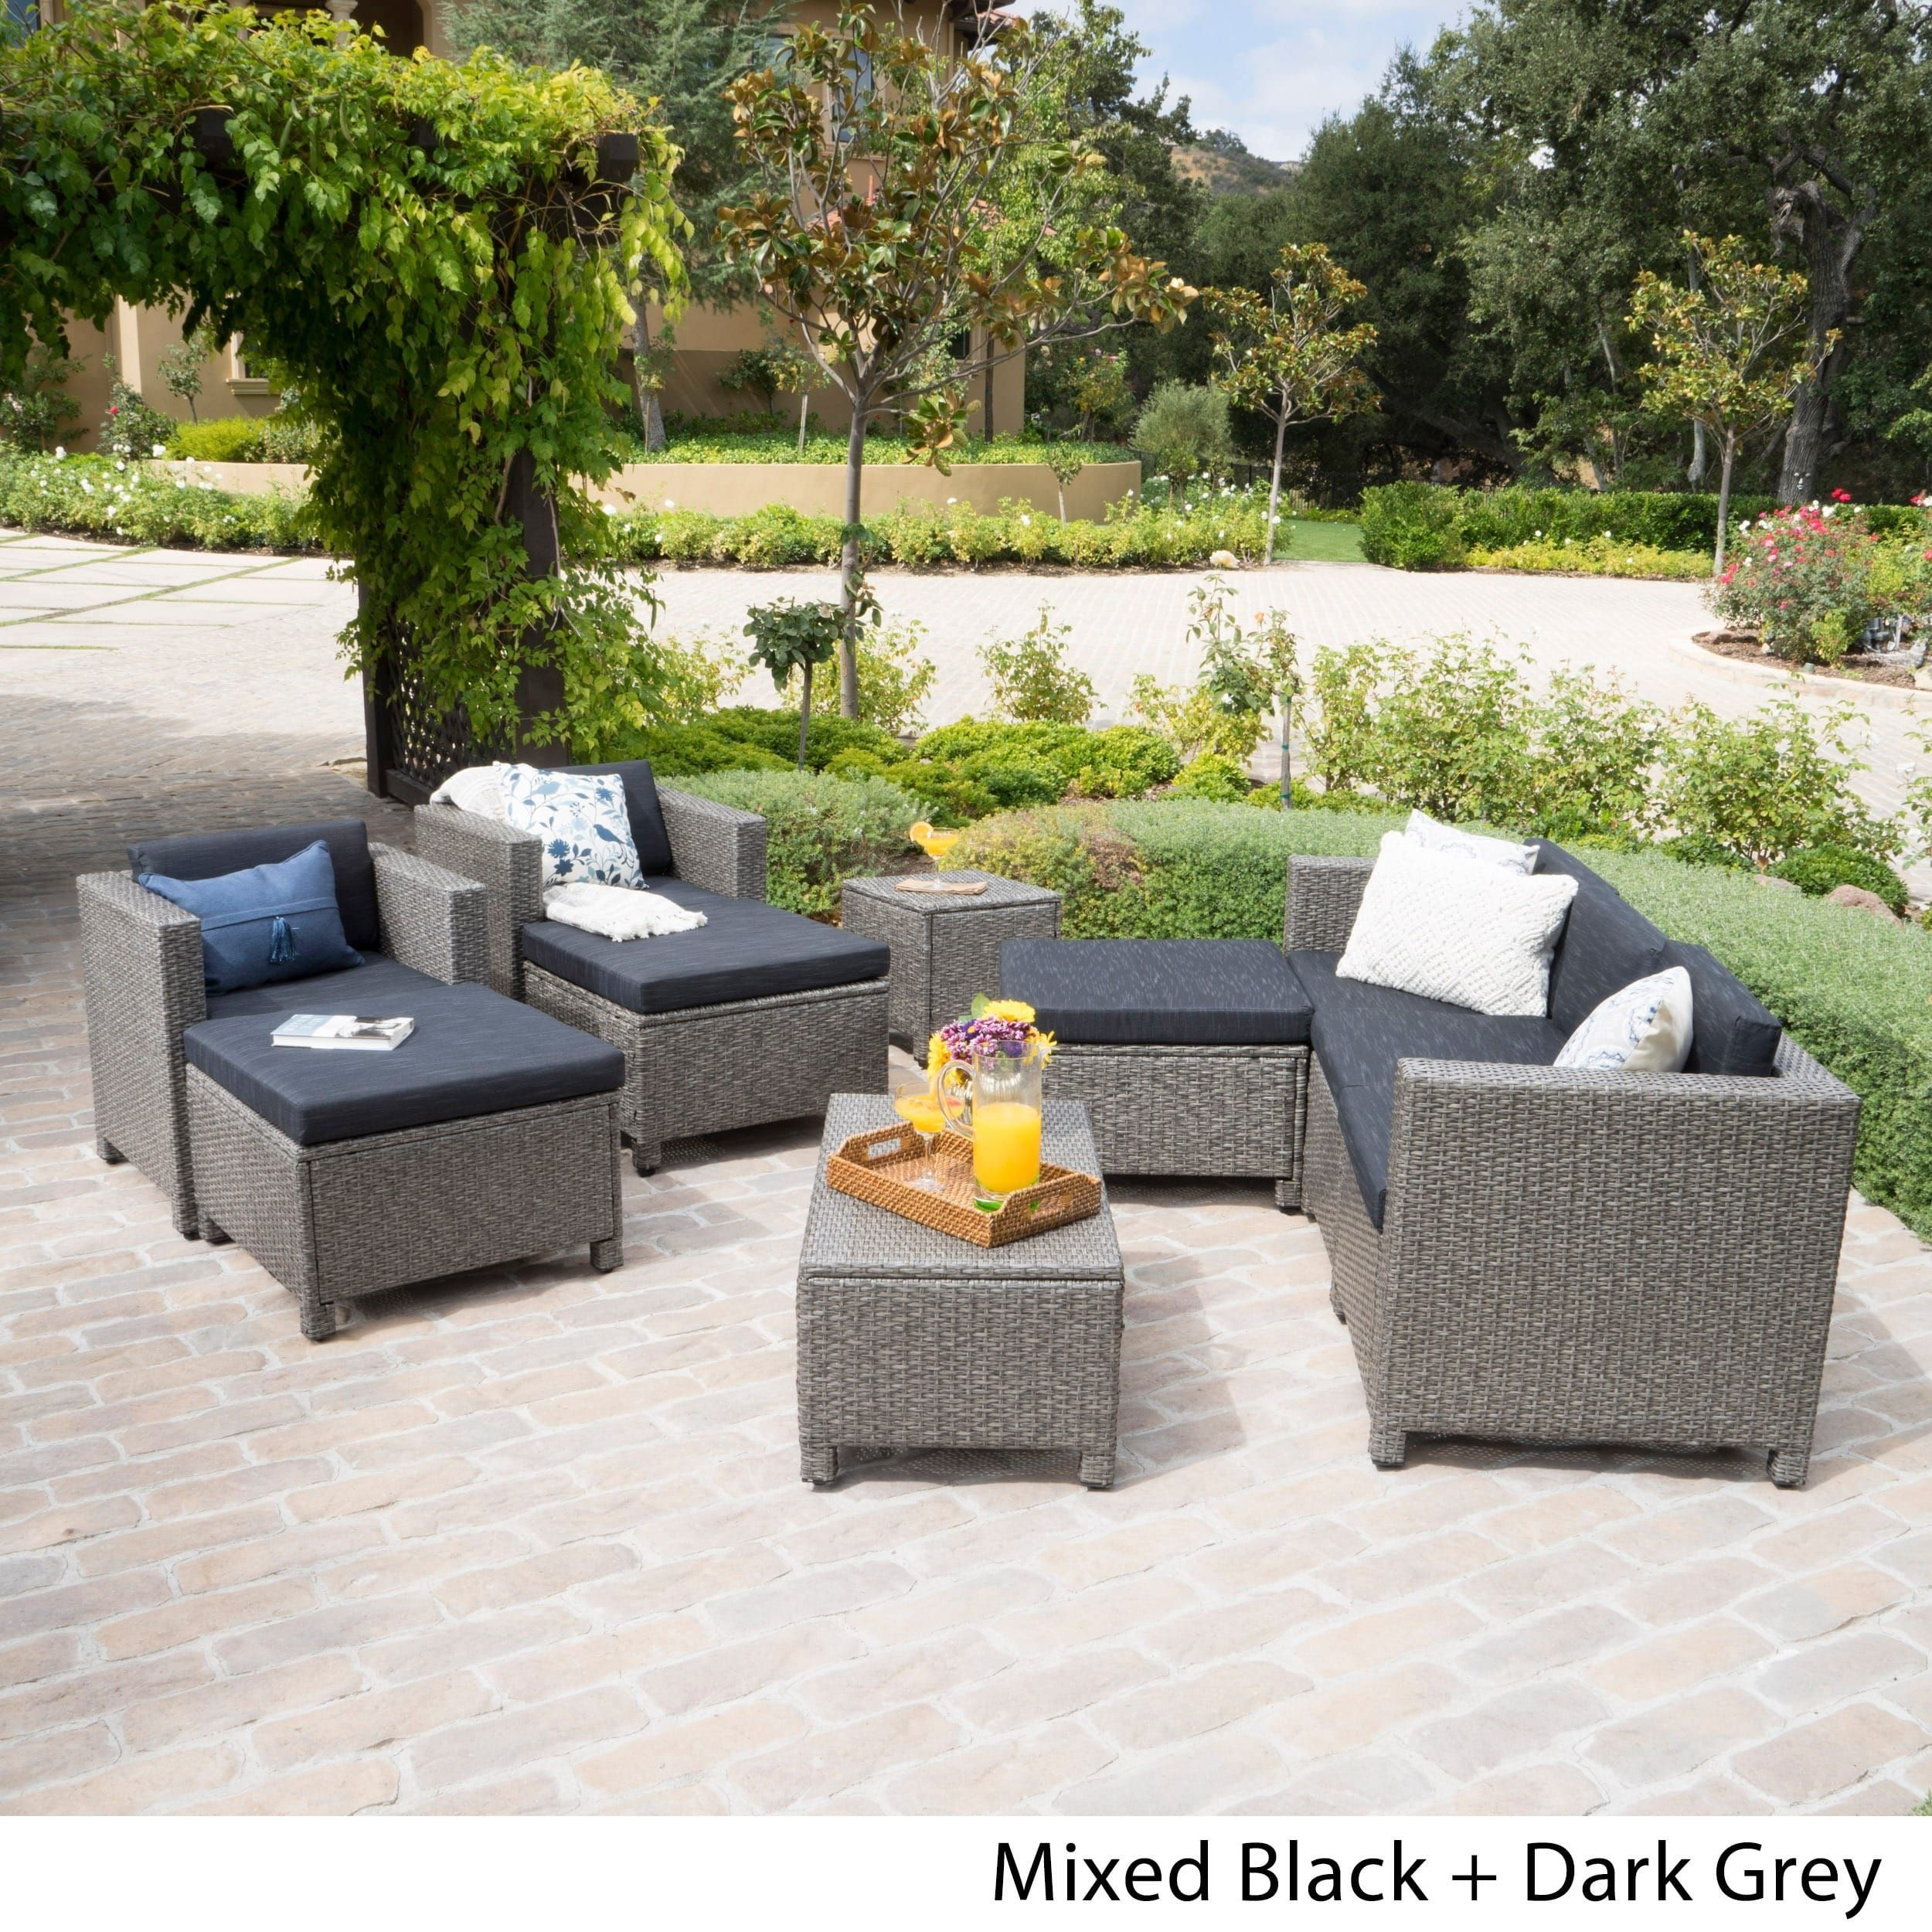 Puerta Outdoor 10 Piece Wicker Sofa Set Collection With Cushions By